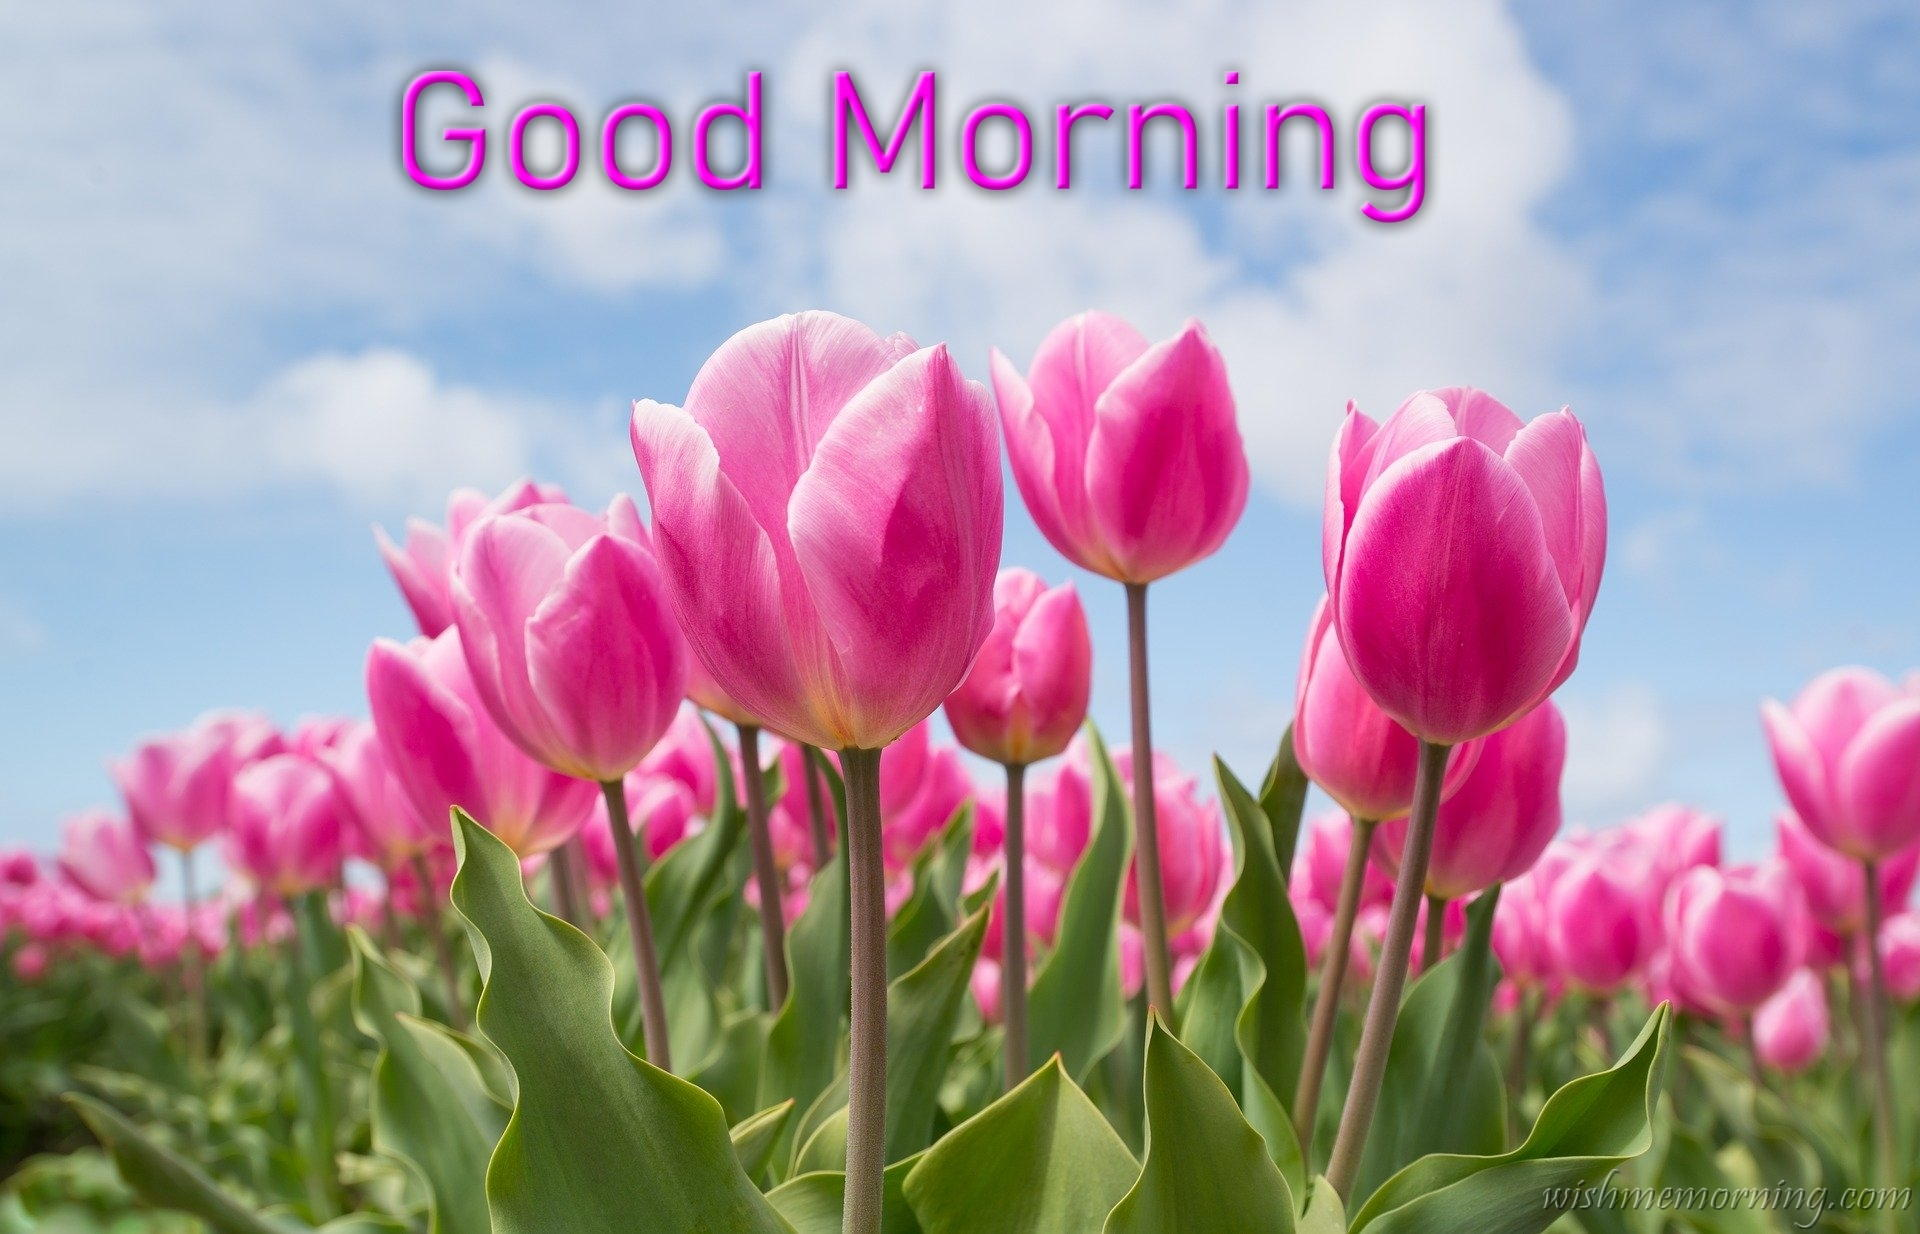 Bunch of Pink Tulip Flower Under Cloudy Sky Good Morning Wish